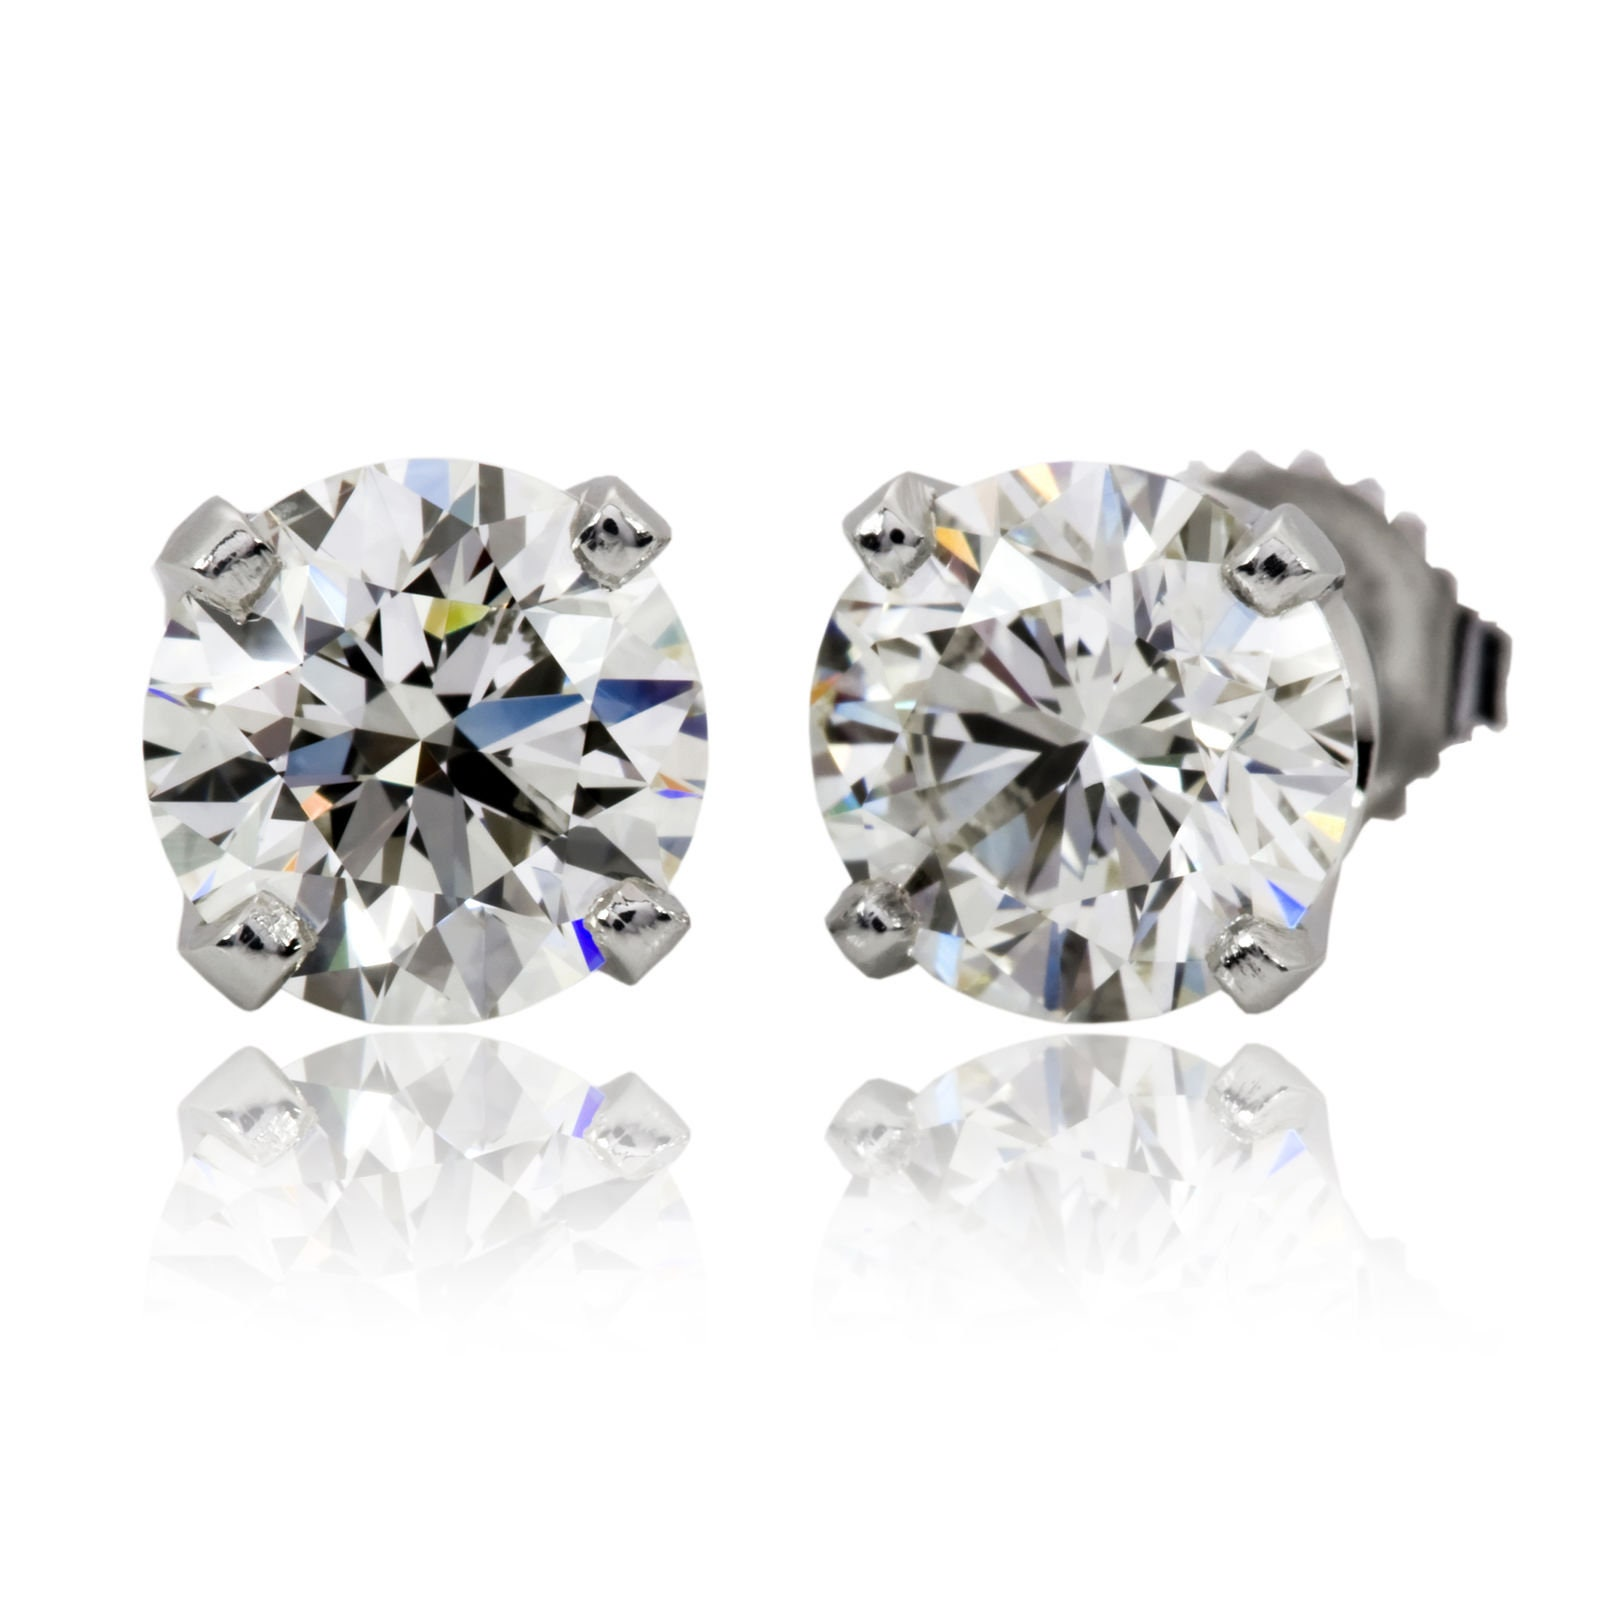 1 34 Carat Round Shape Real Solitaire Diamond Stud Earrings